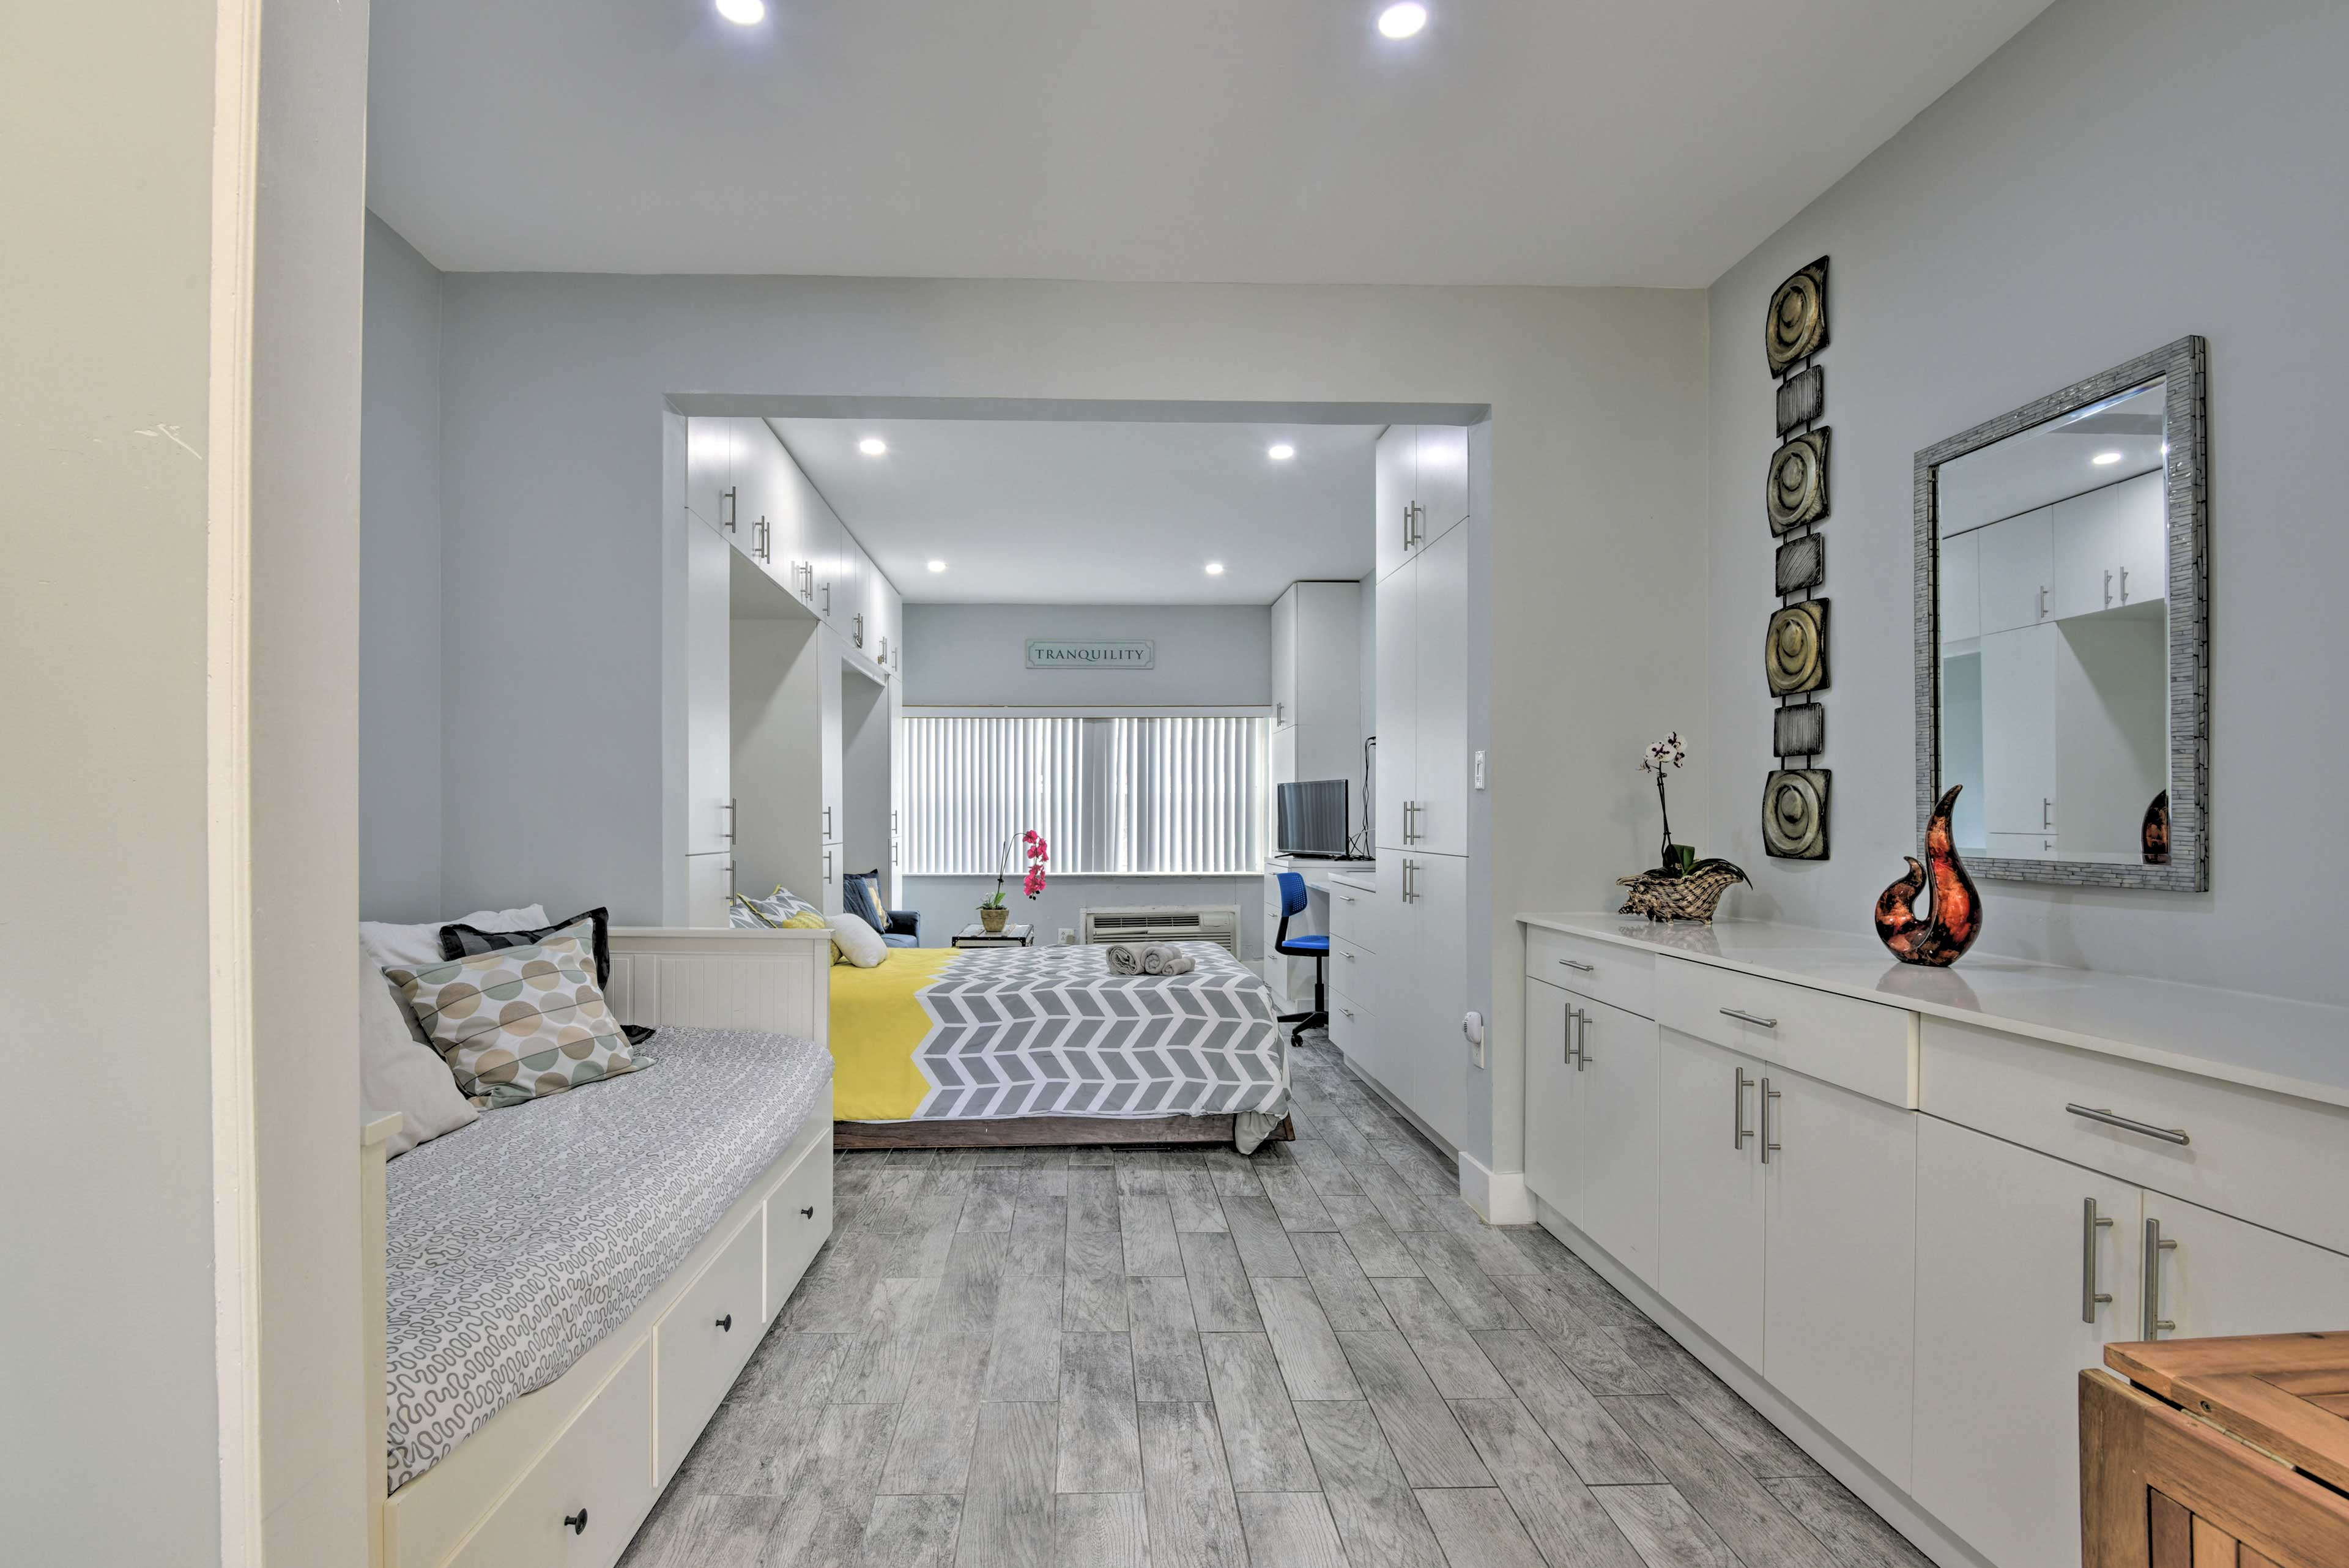 Delight in modern decor and bright spaces in this studio.